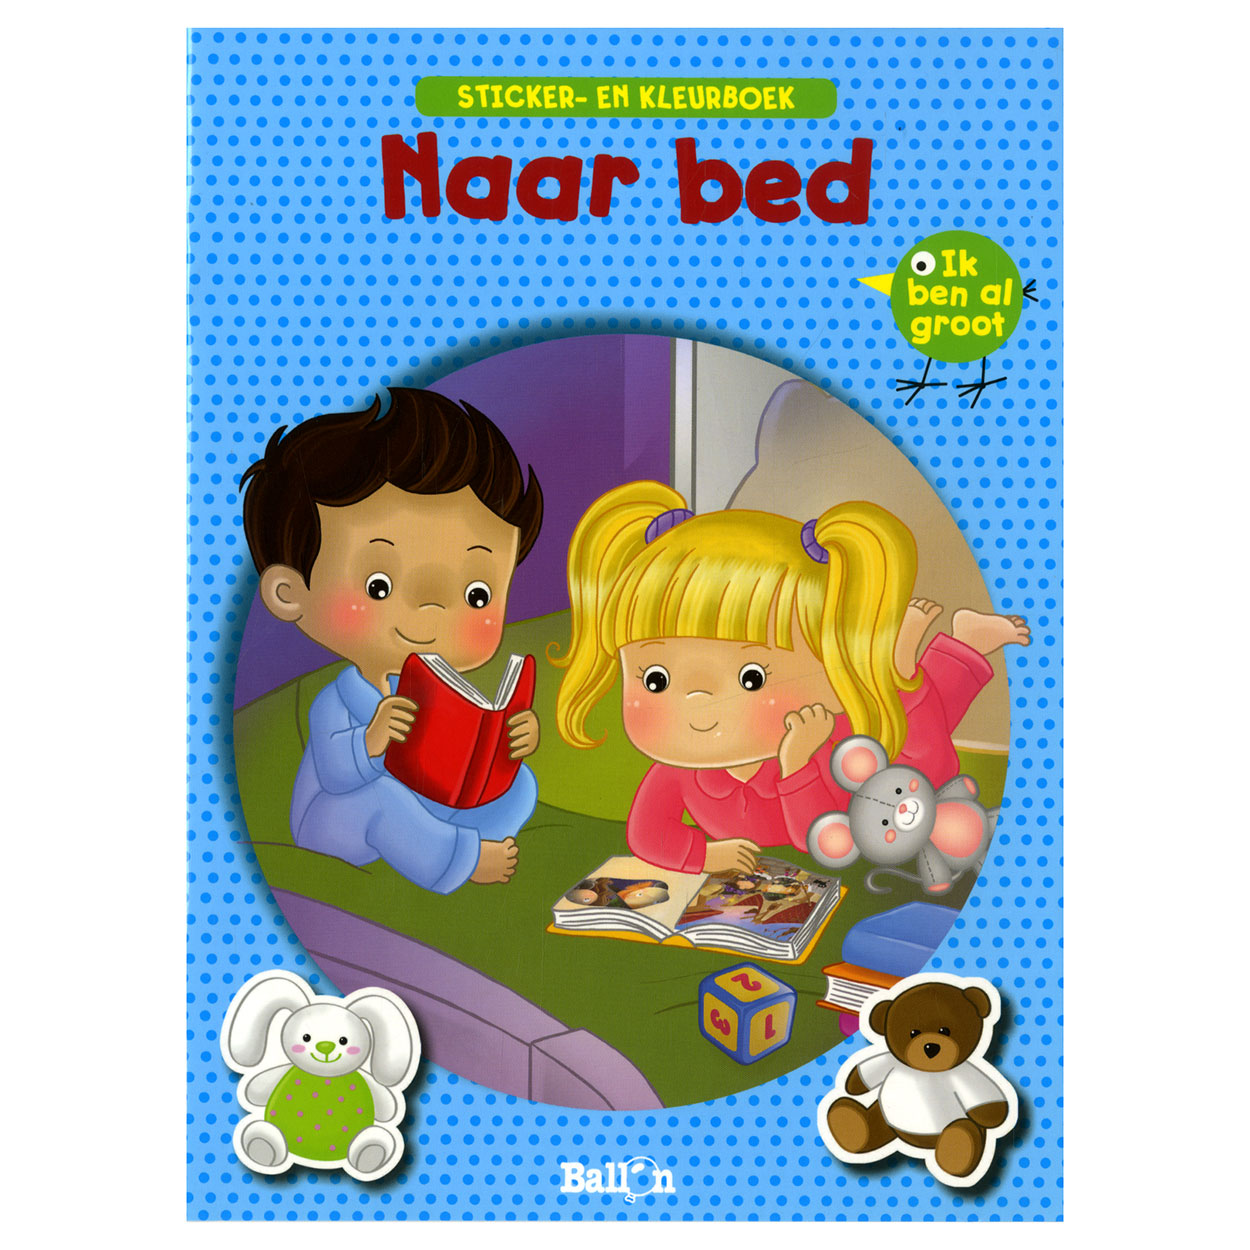 Stickerboek Naar bed